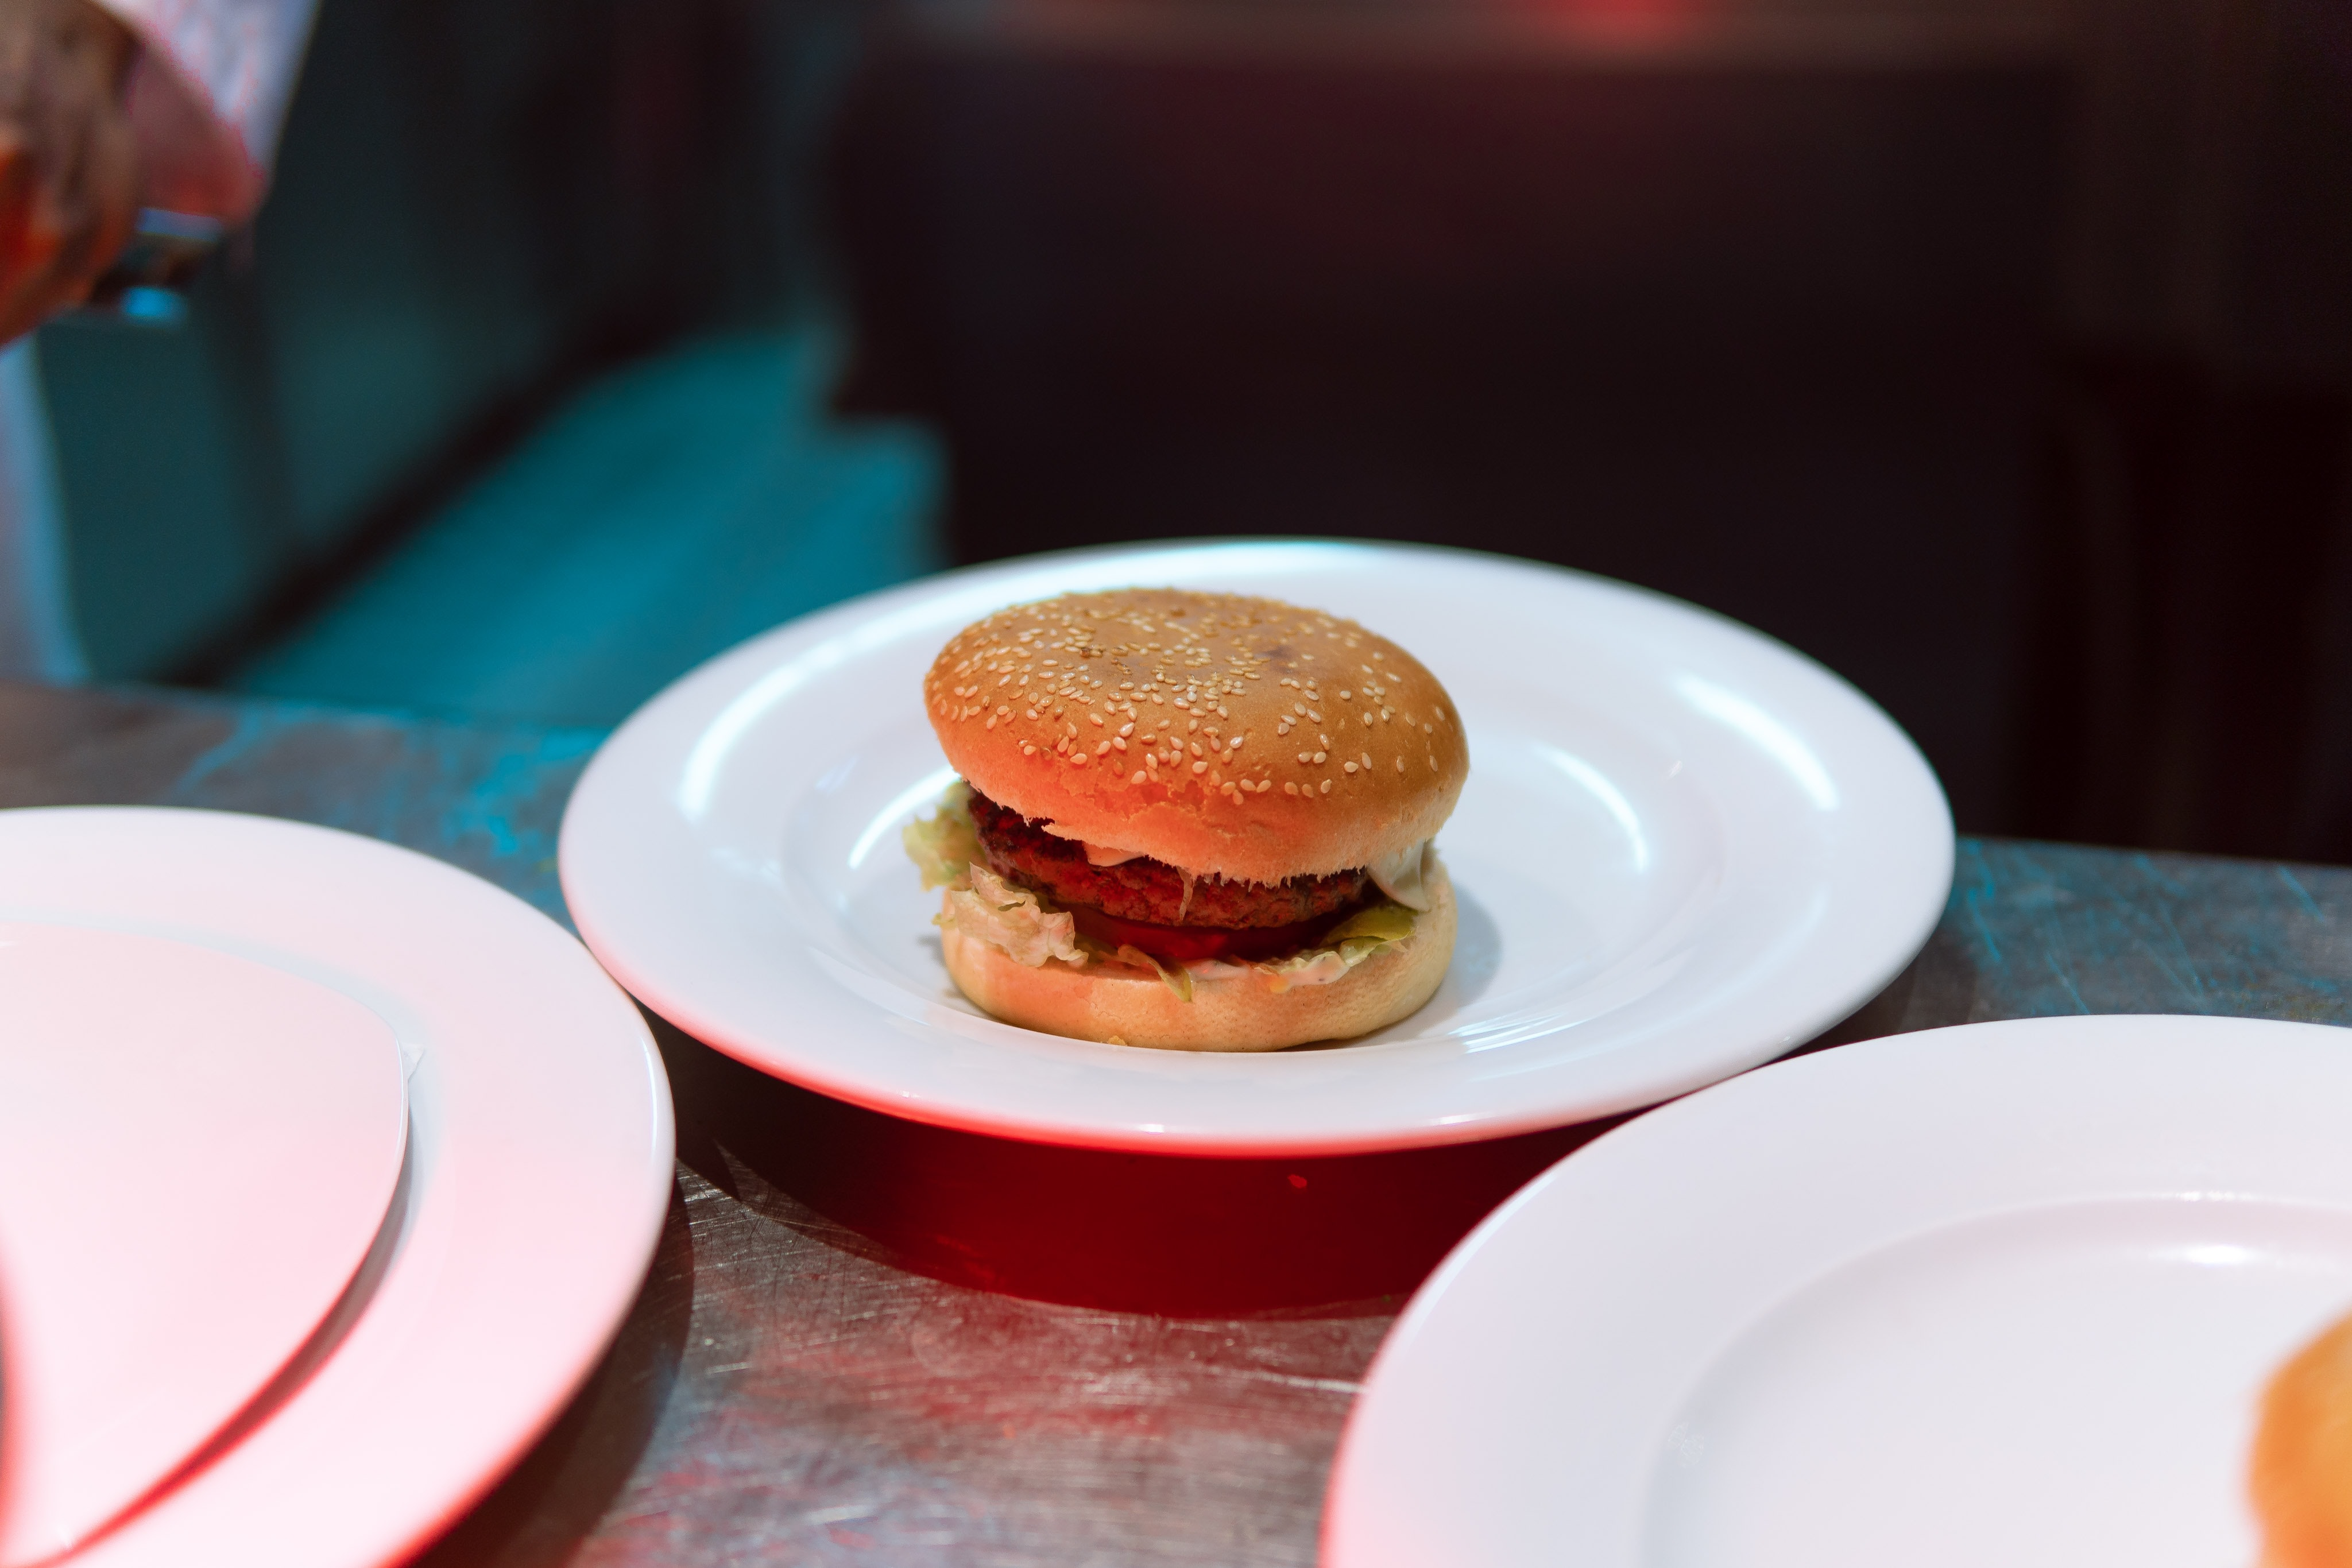 patty with bun on white plate